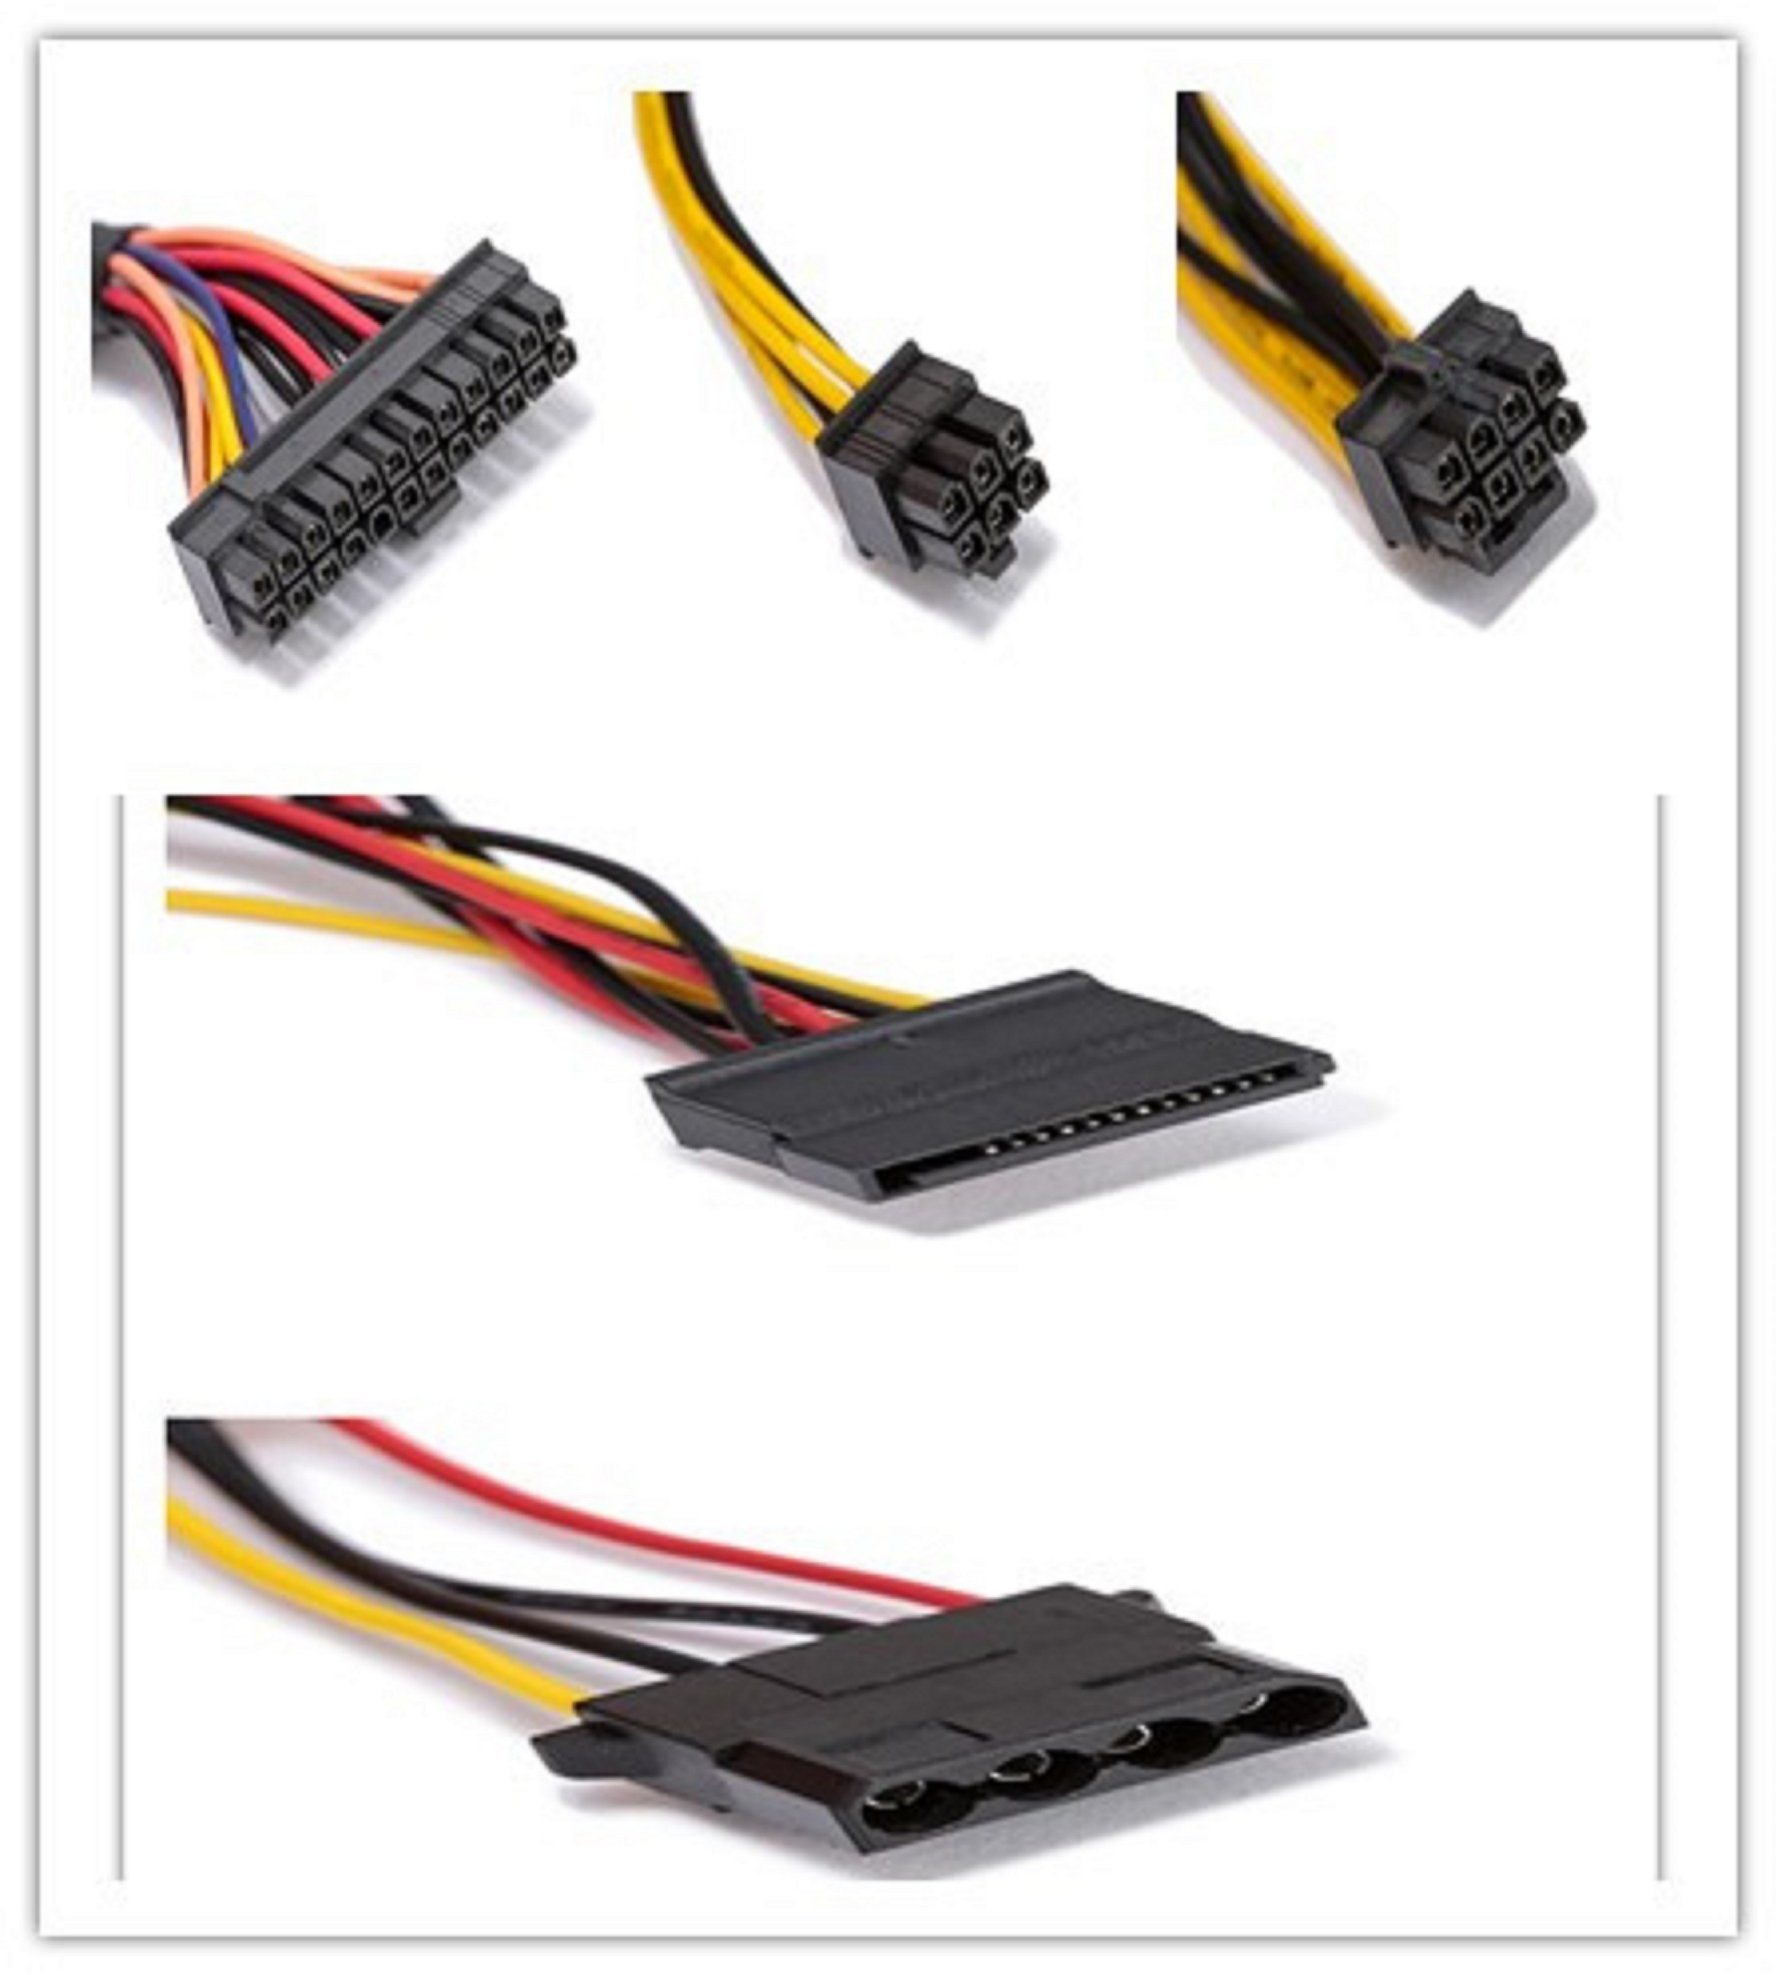 China Switch Mode Power Supply With Jc Factory Direct Sale Desktop Electronic Which Is Switched Based Application 12cm Fan 350w Psu